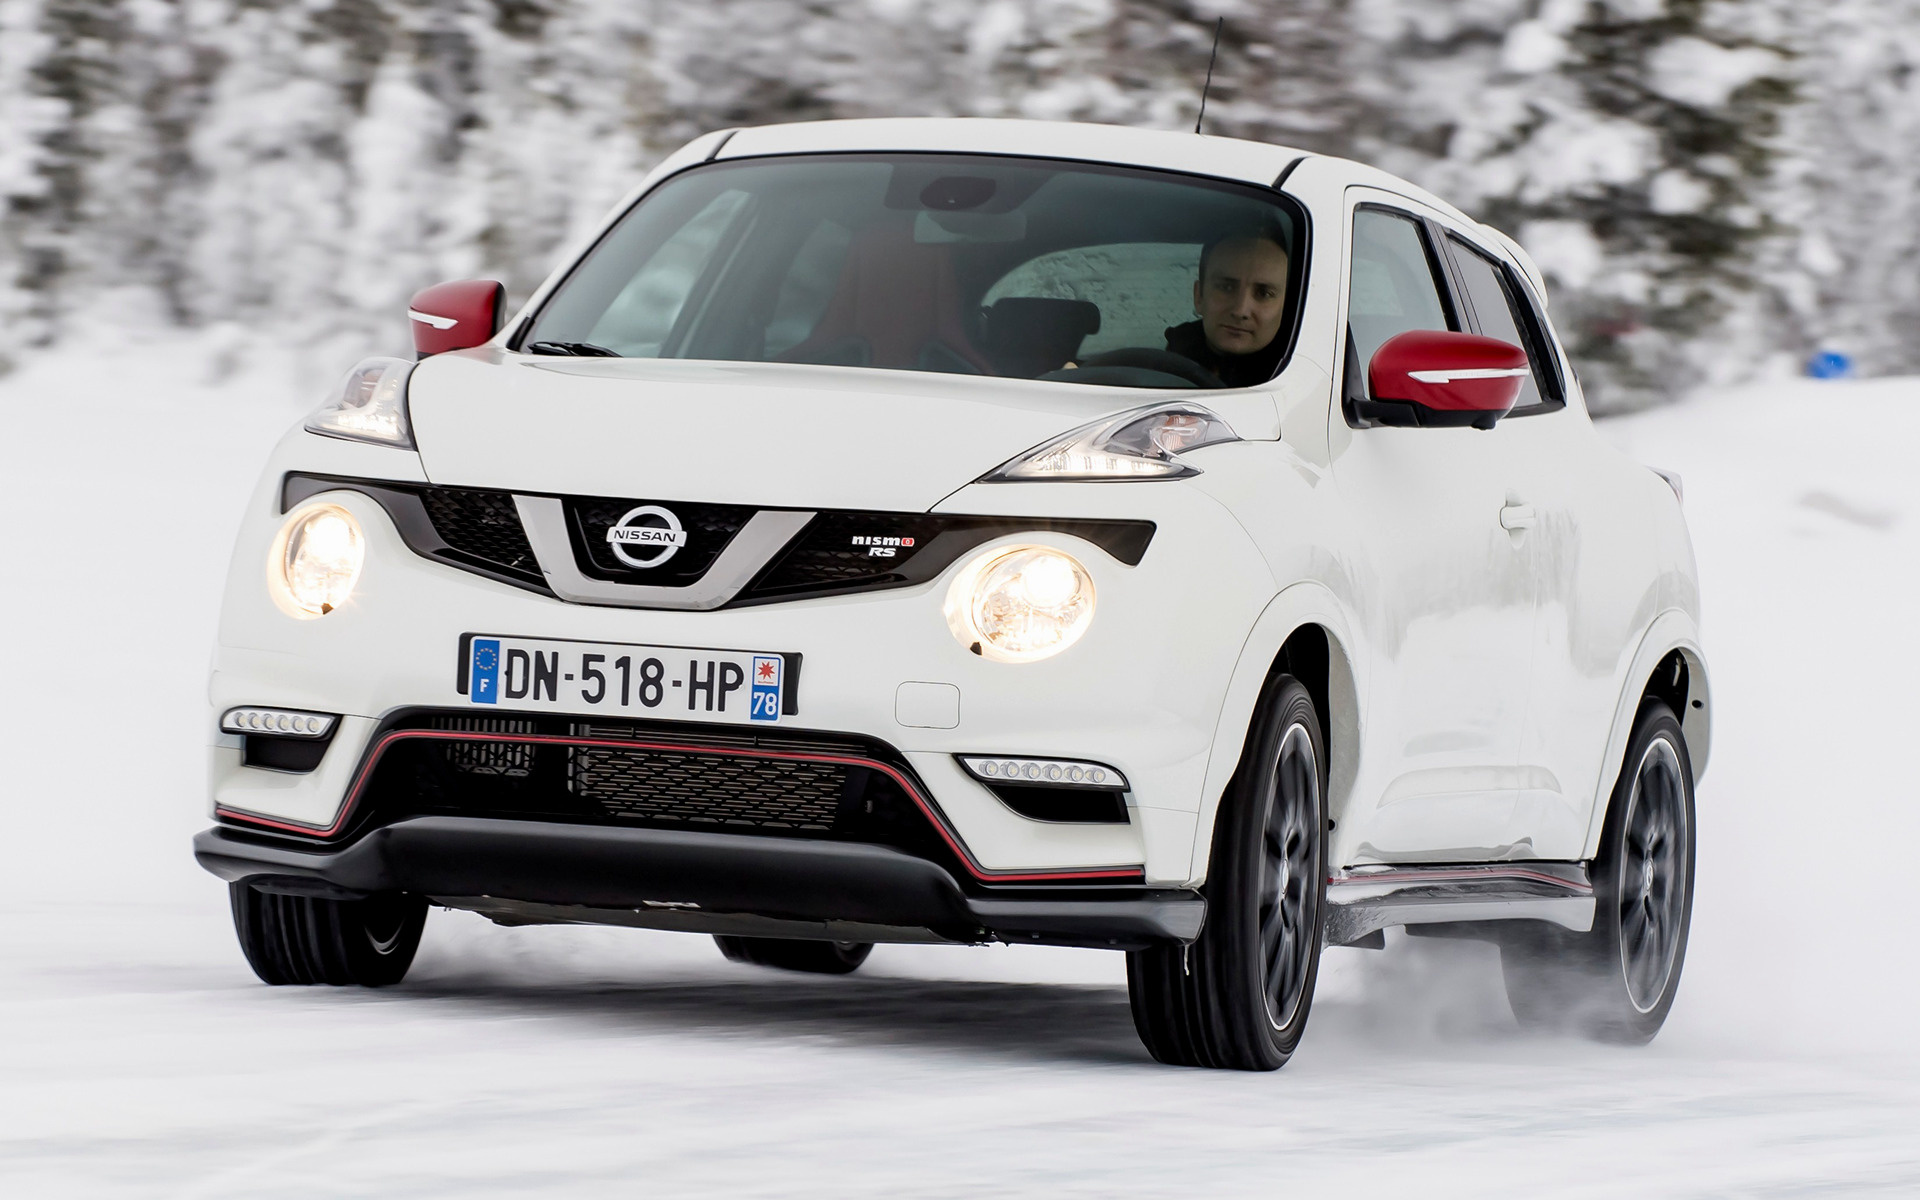 nissan juke nismo rs 2014 wallpapers and hd images car. Black Bedroom Furniture Sets. Home Design Ideas